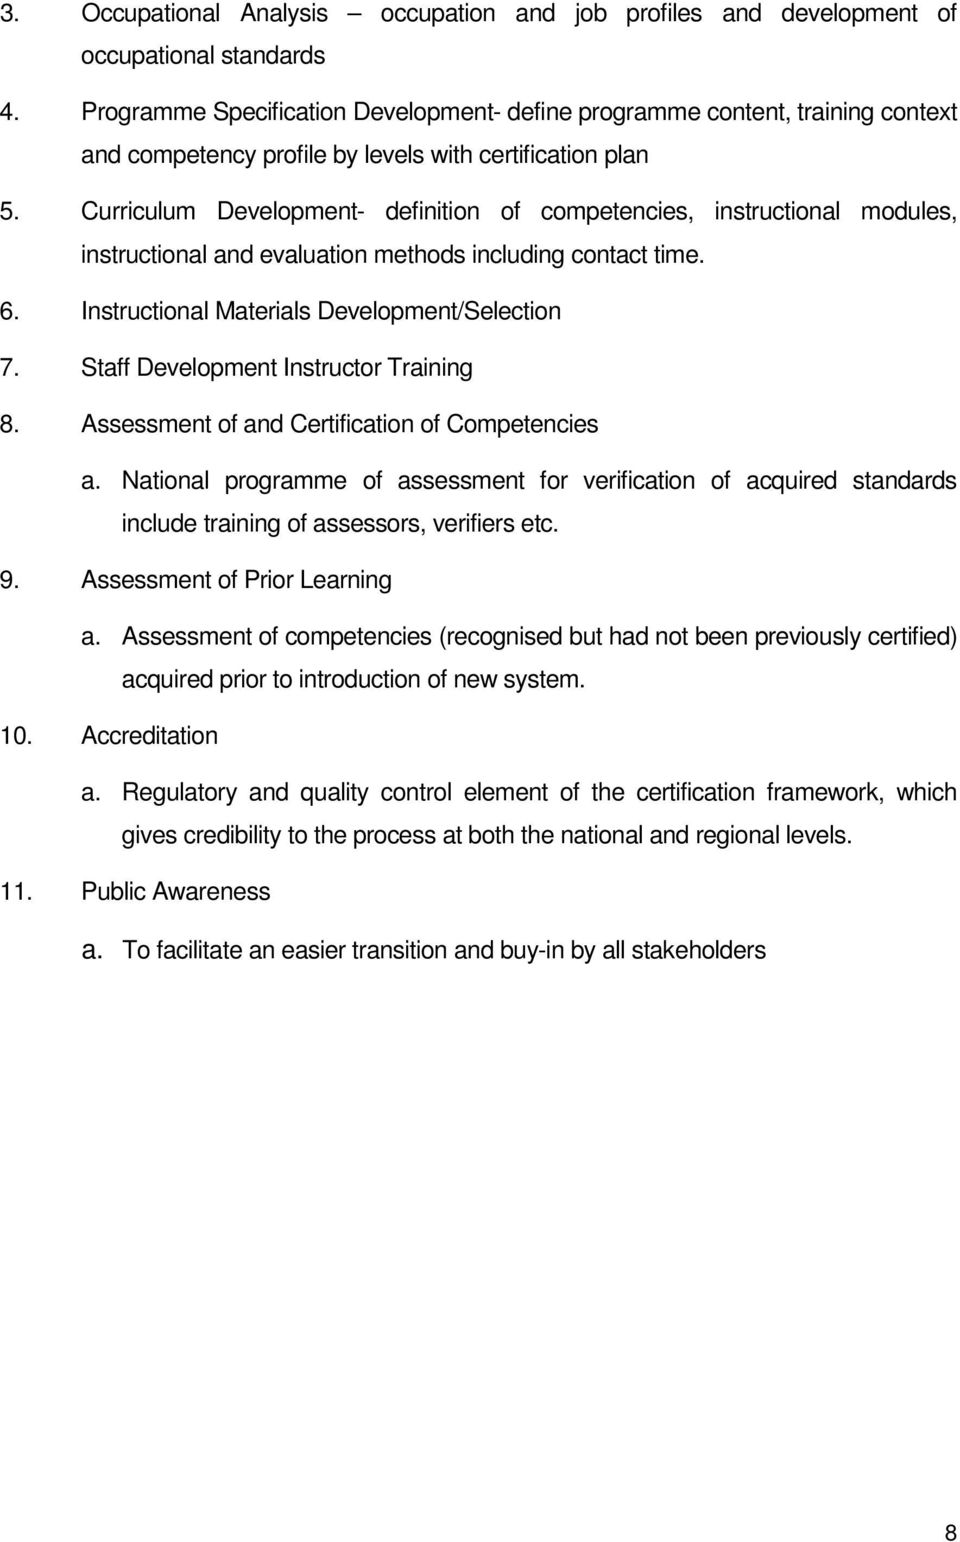 Staff assessment methods. Certification and evaluation of staff 29